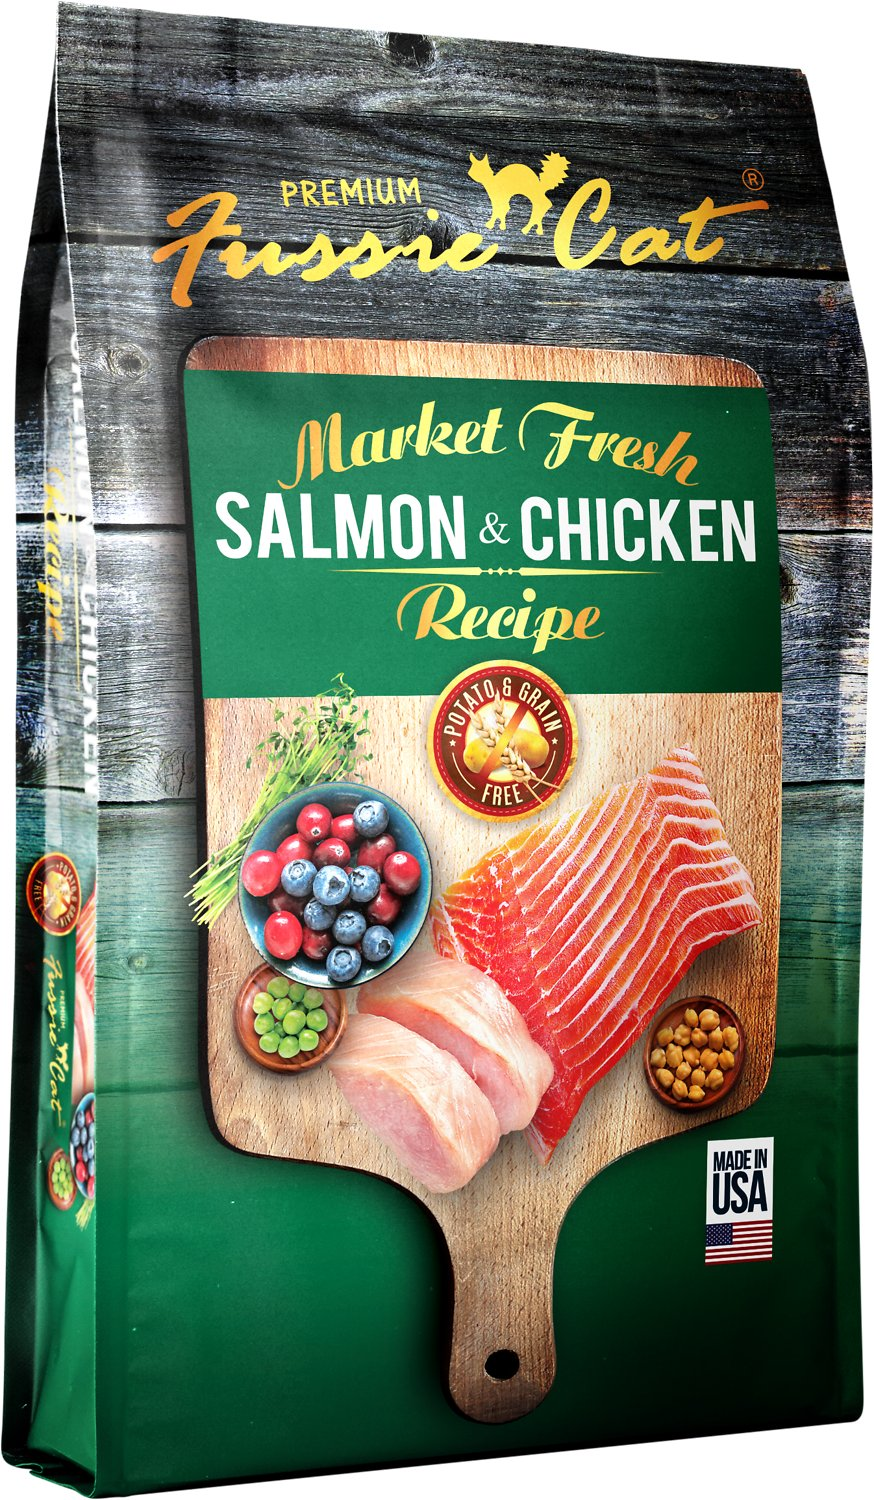 Market Fresh Salmon & Chicken